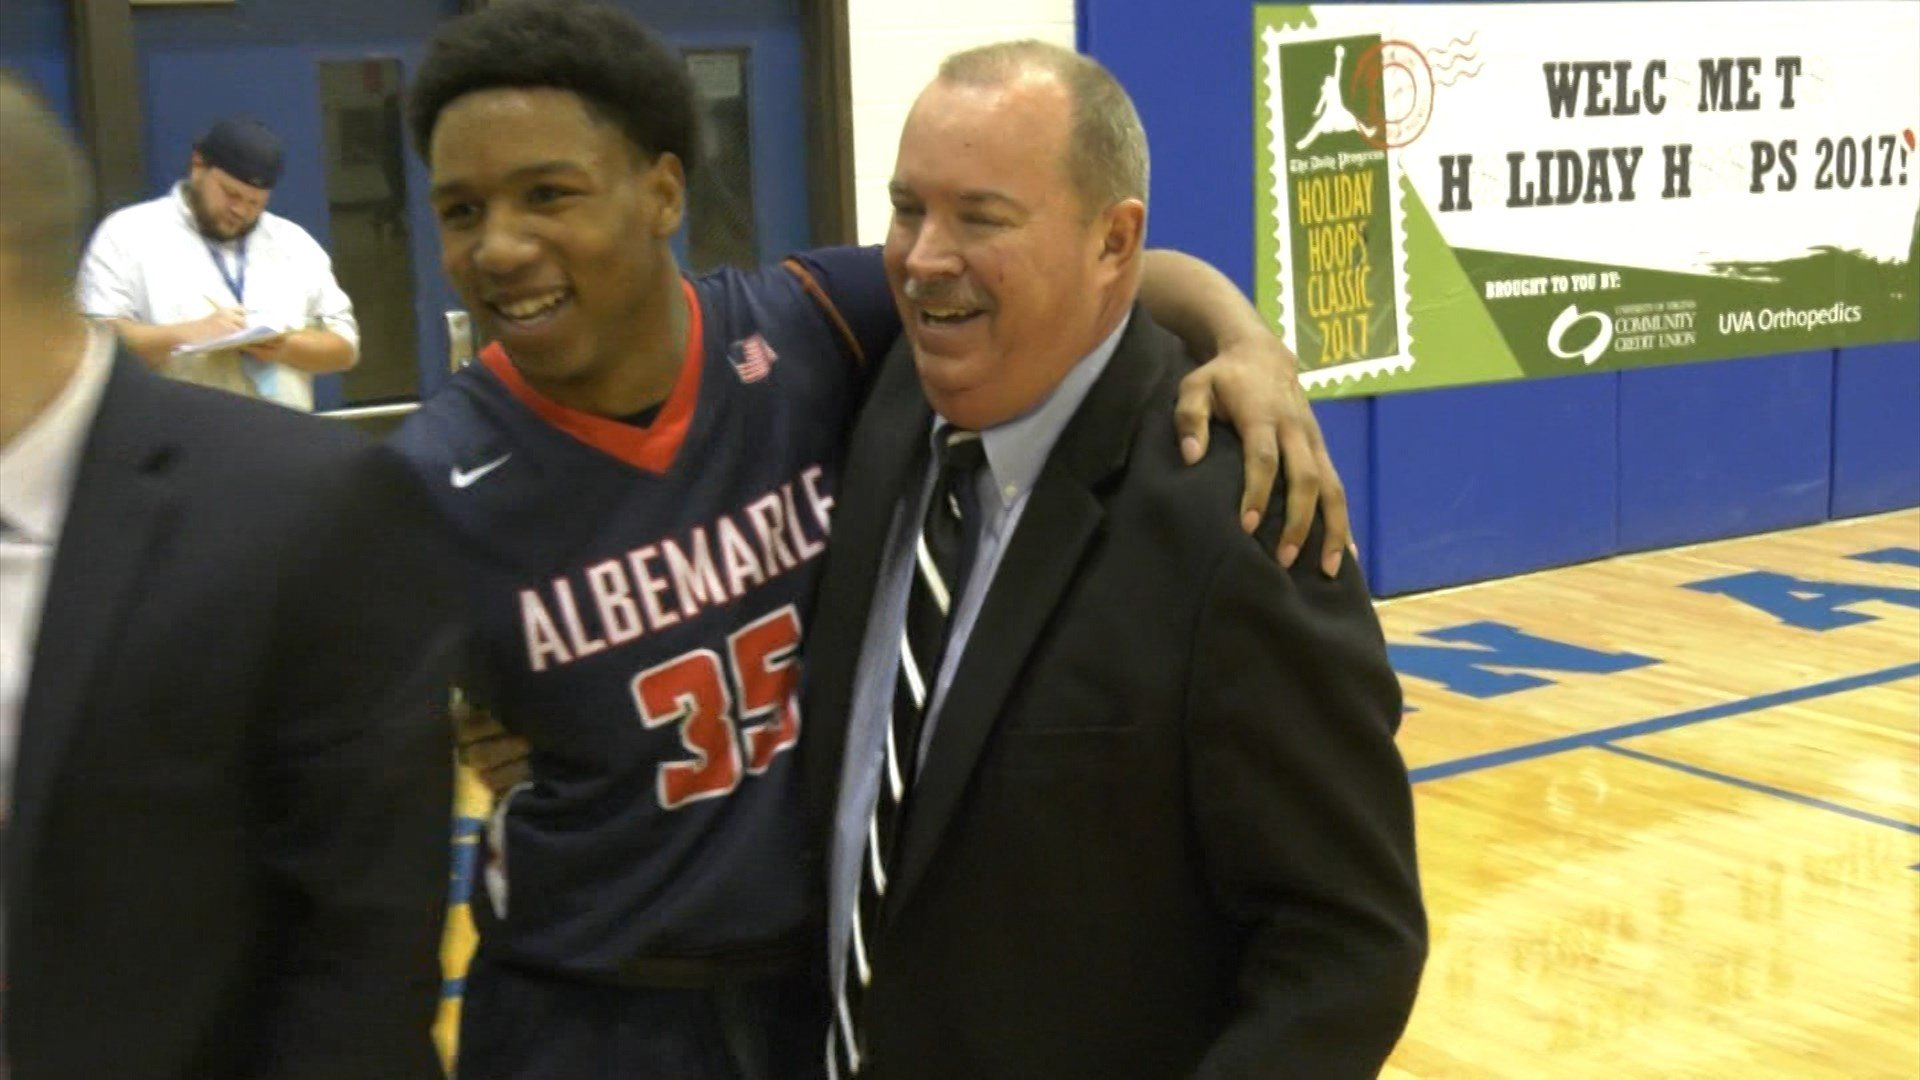 Albemarle wins the Holiday Classic Championship